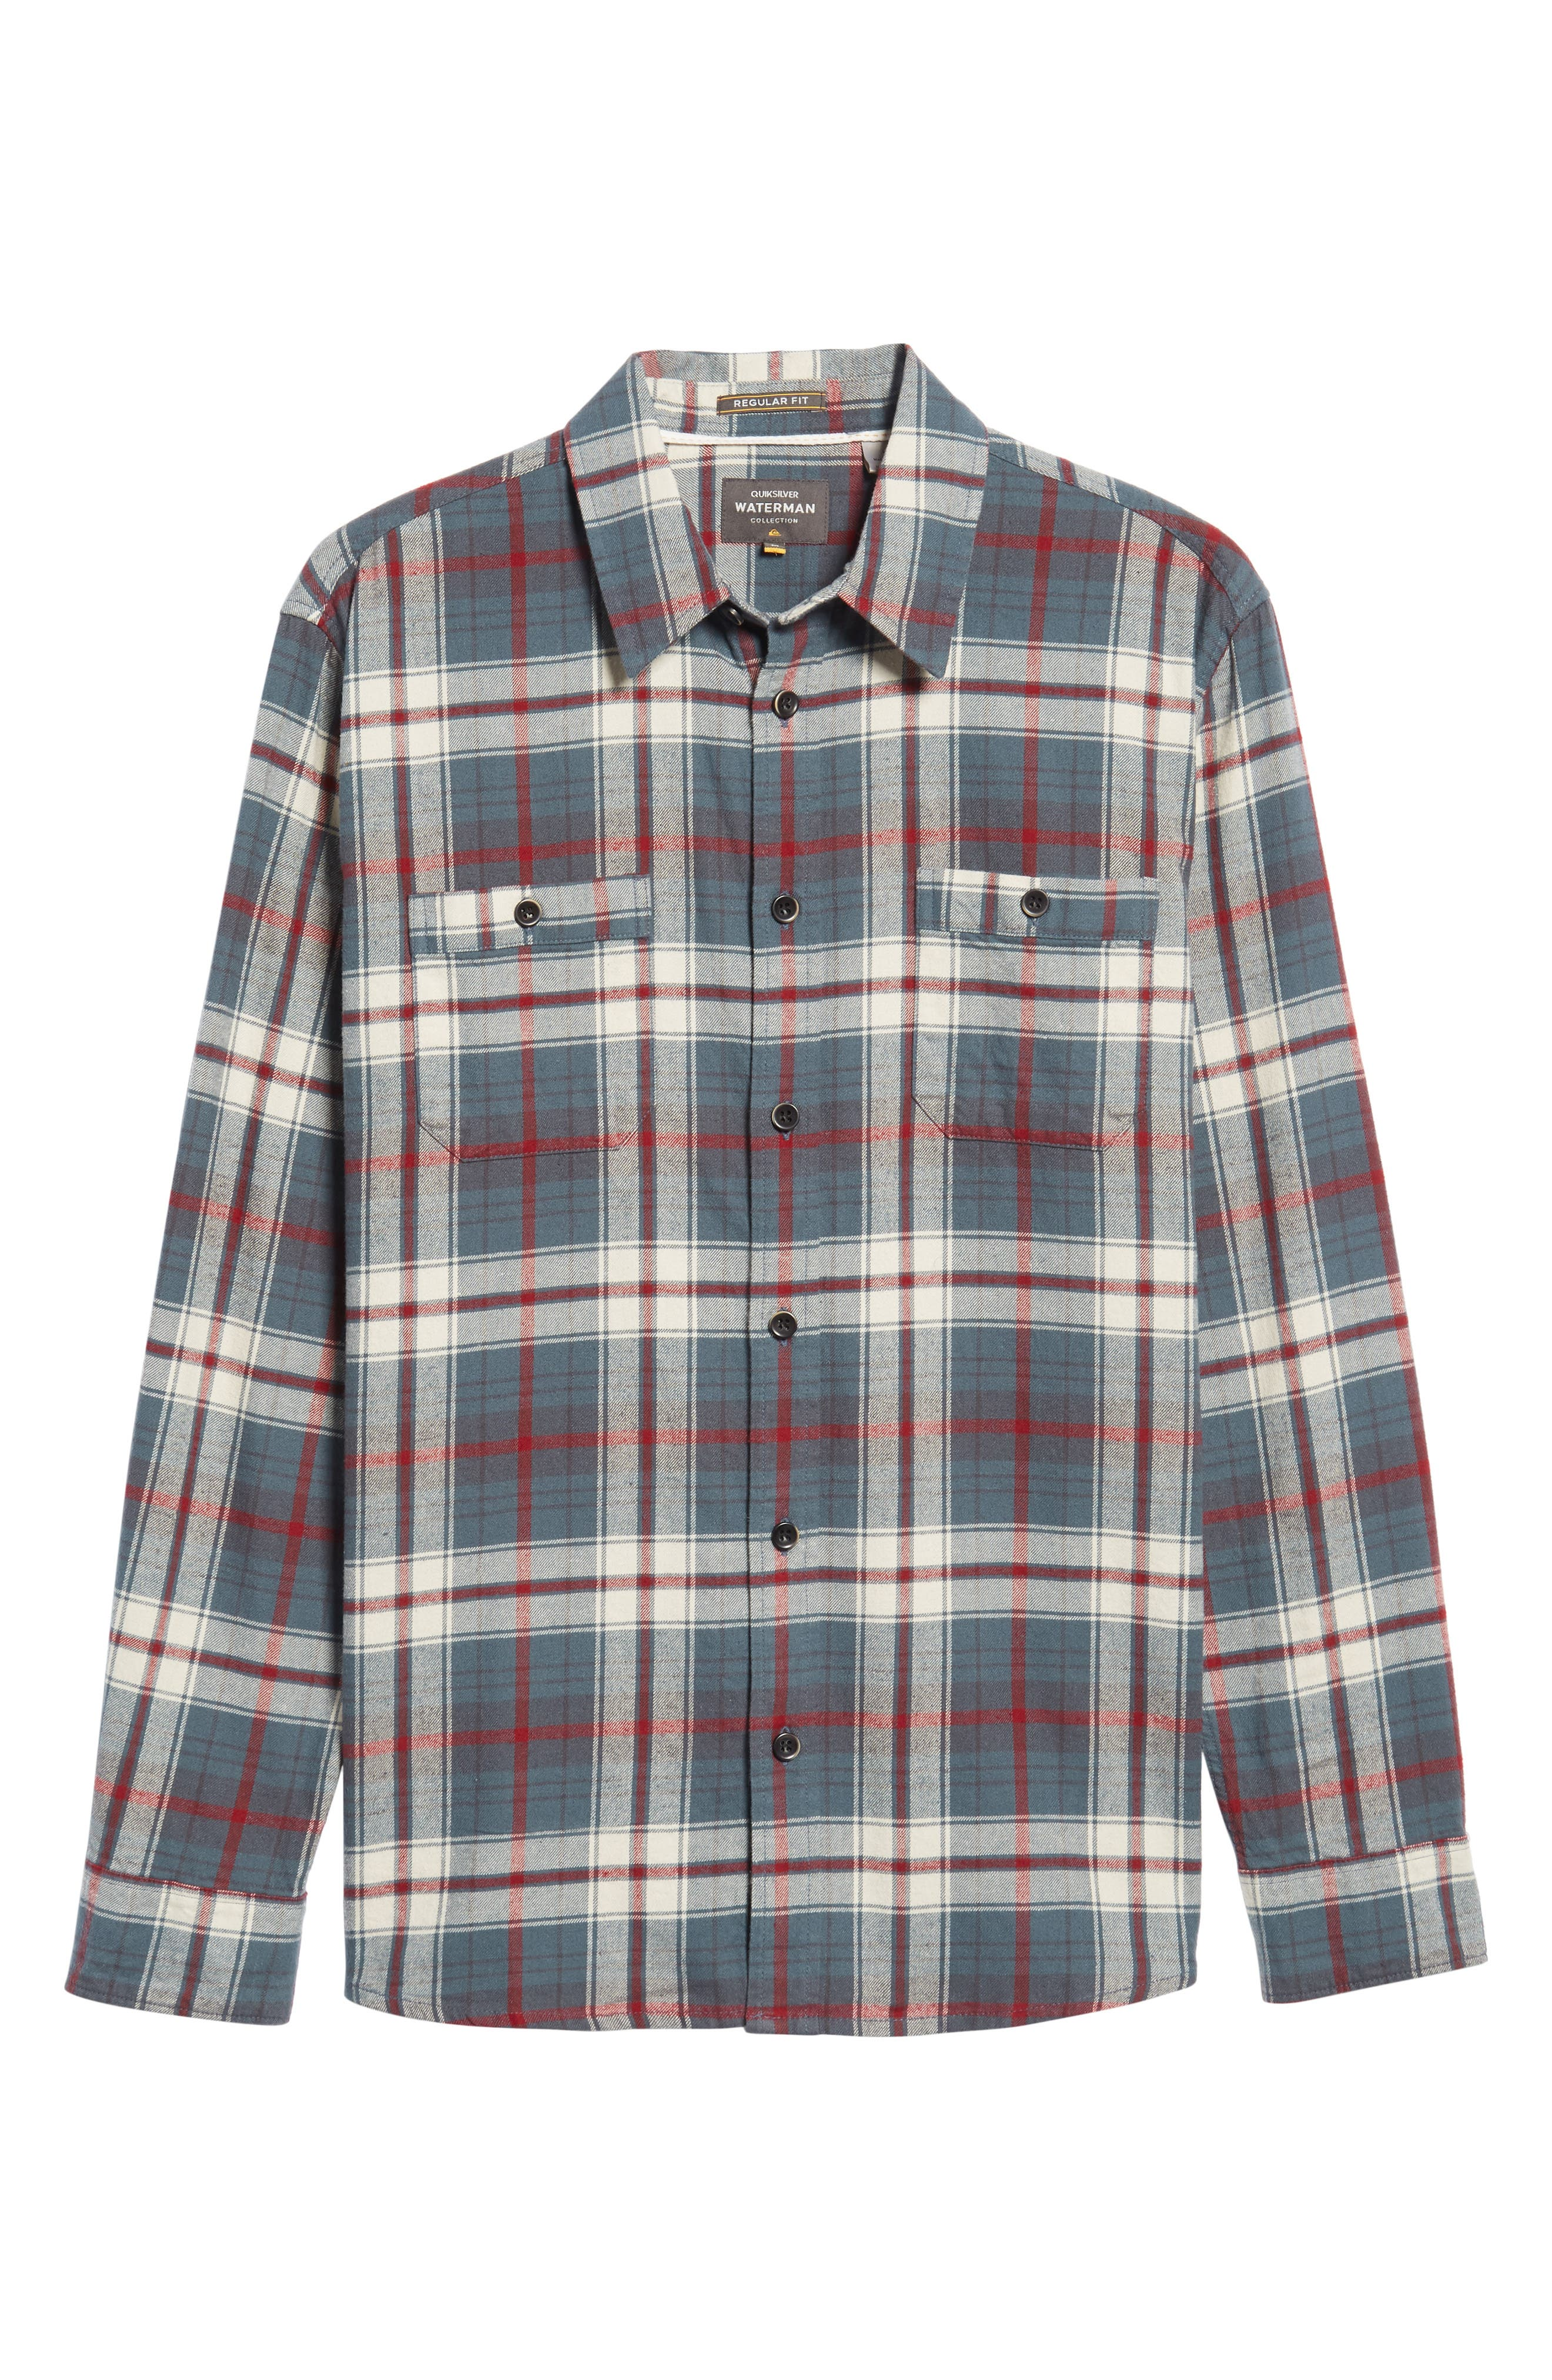 Raleigh Plaid Flannel Sport Shirt,                             Alternate thumbnail 6, color,                             009